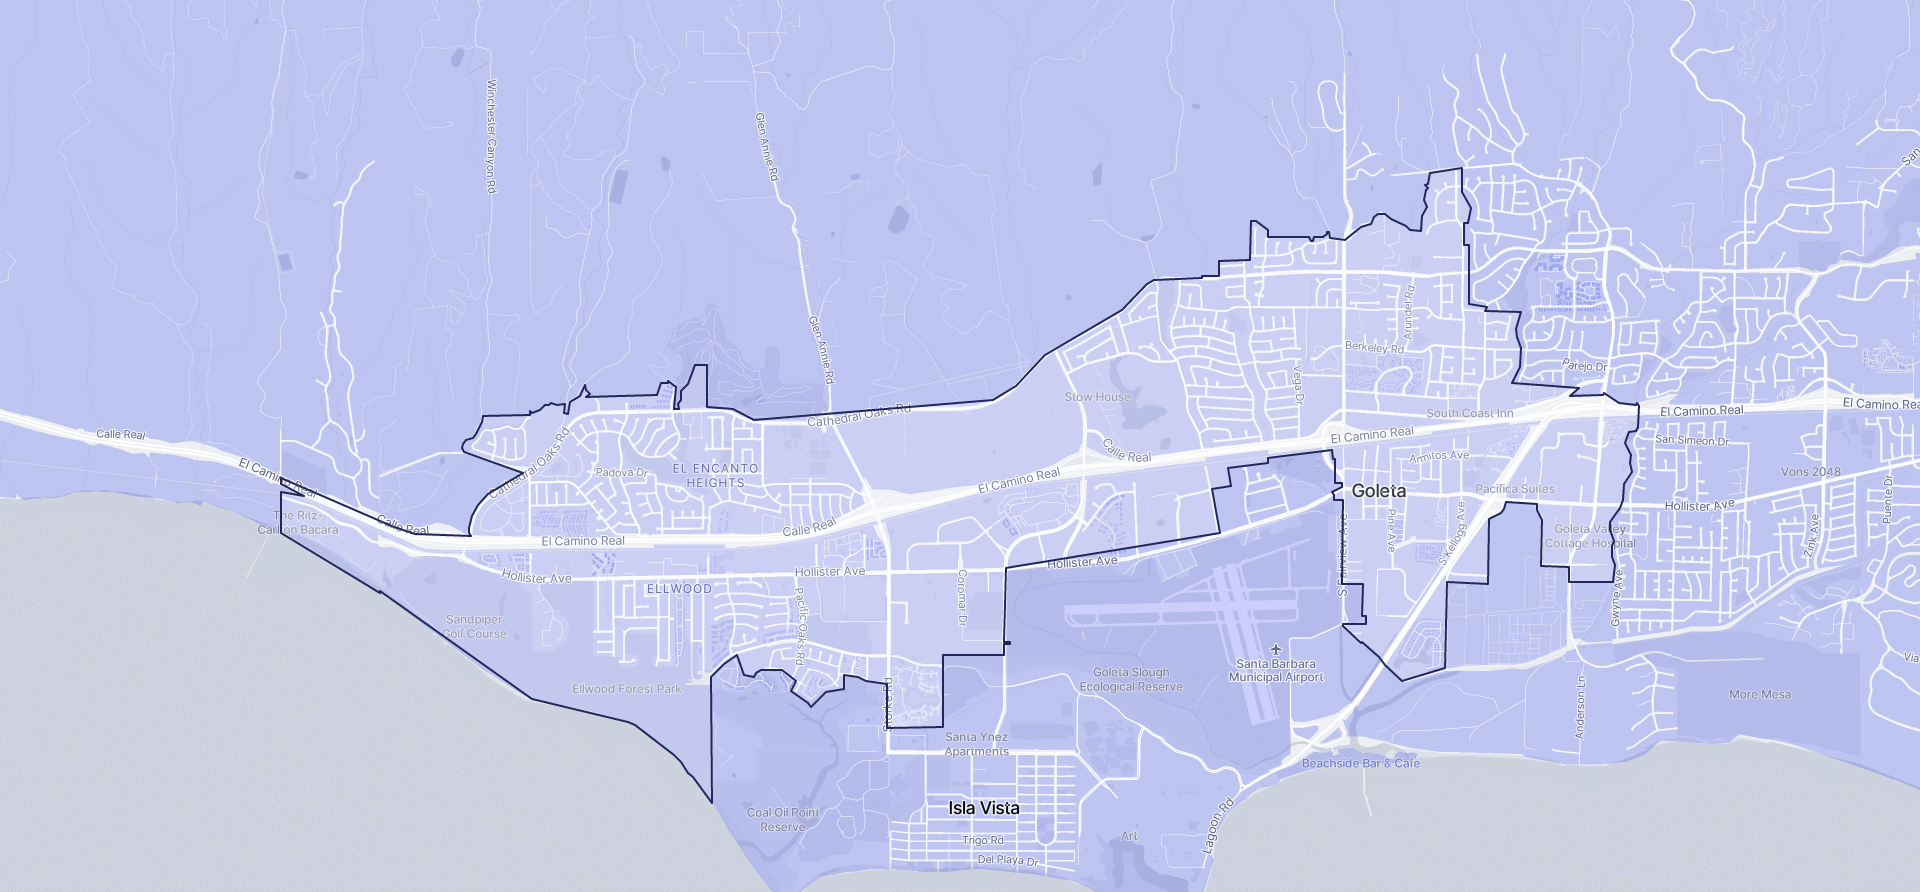 Image of Goleta boundaries on a map.